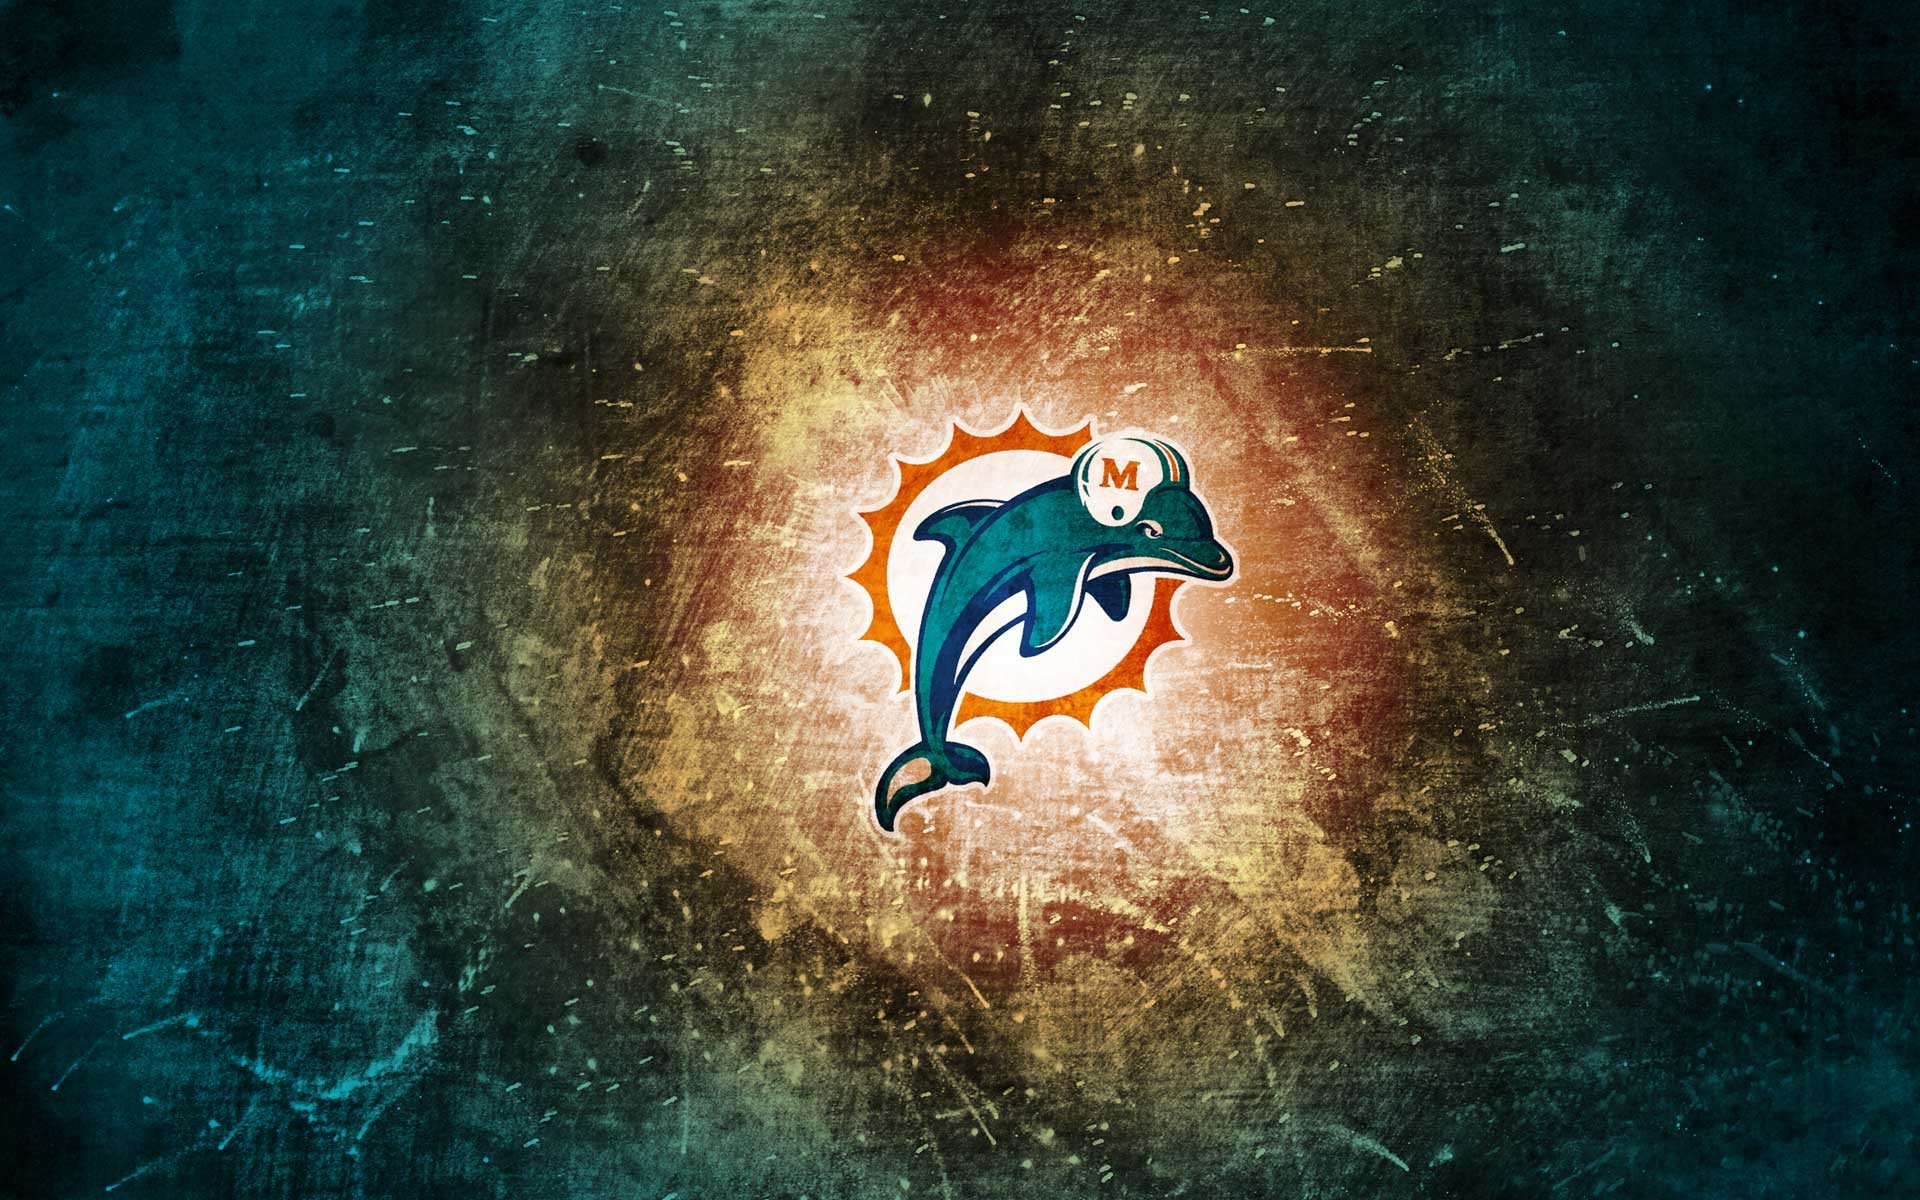 1920x1200 Miami Dolphins HD background | Miami Dolphins wallpapers